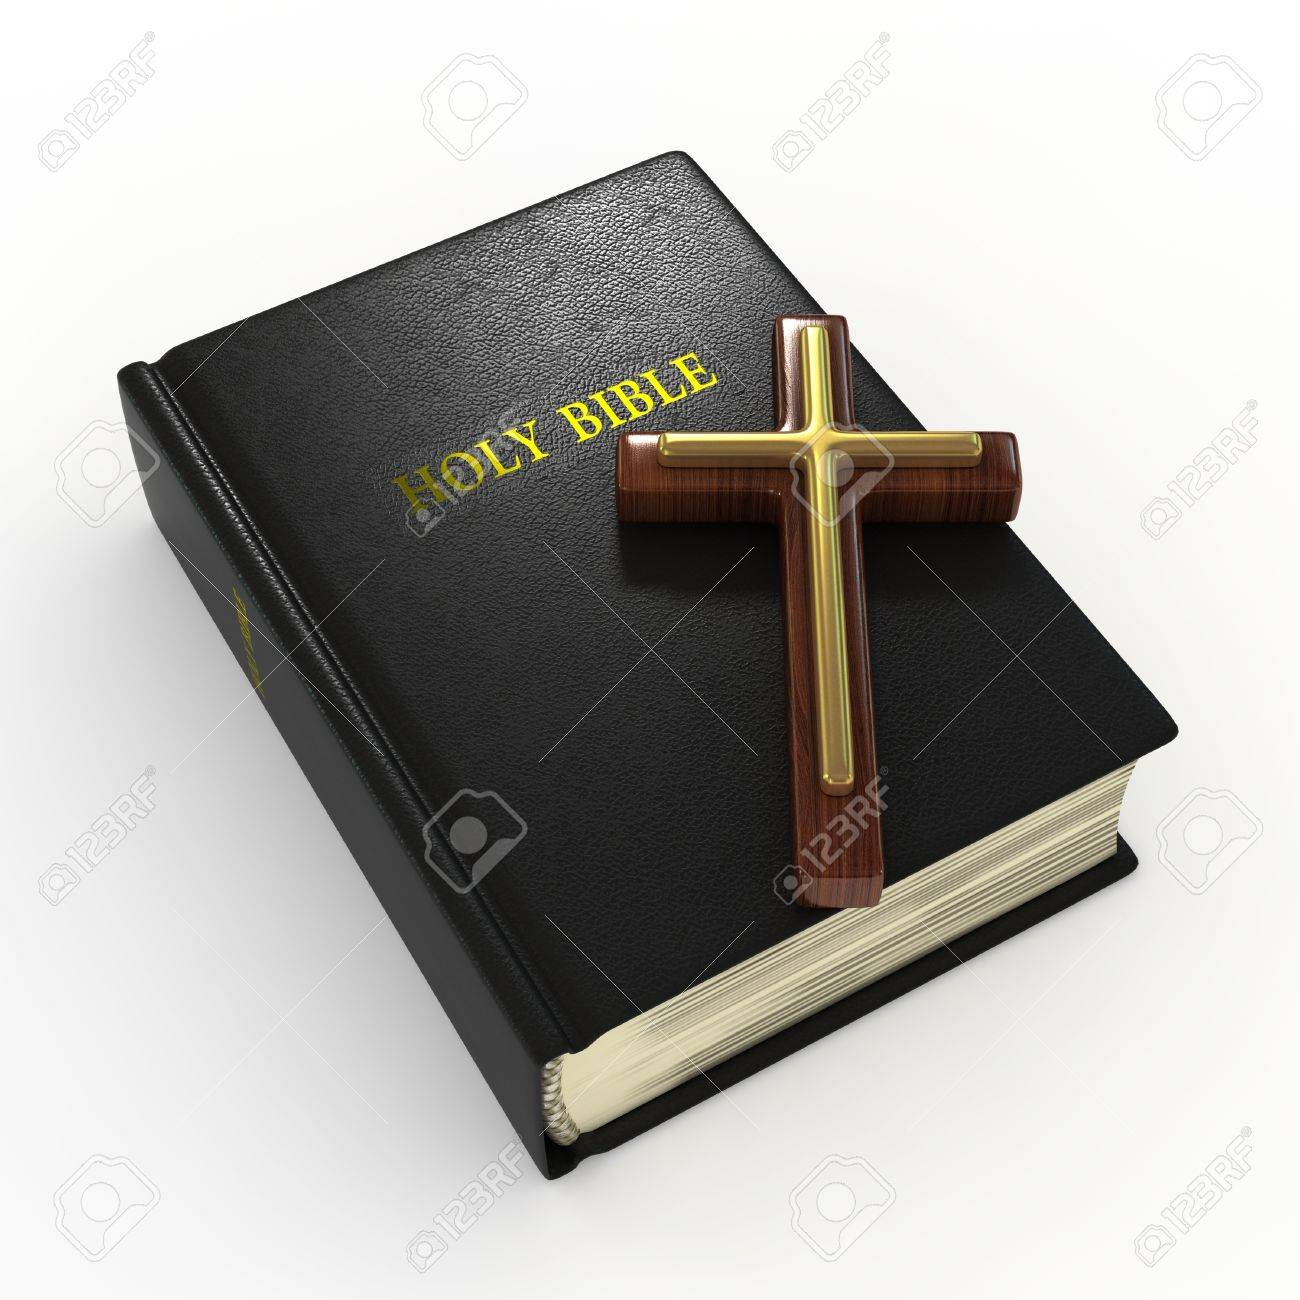 bible and cross images u0026 stock pictures royalty free bible and